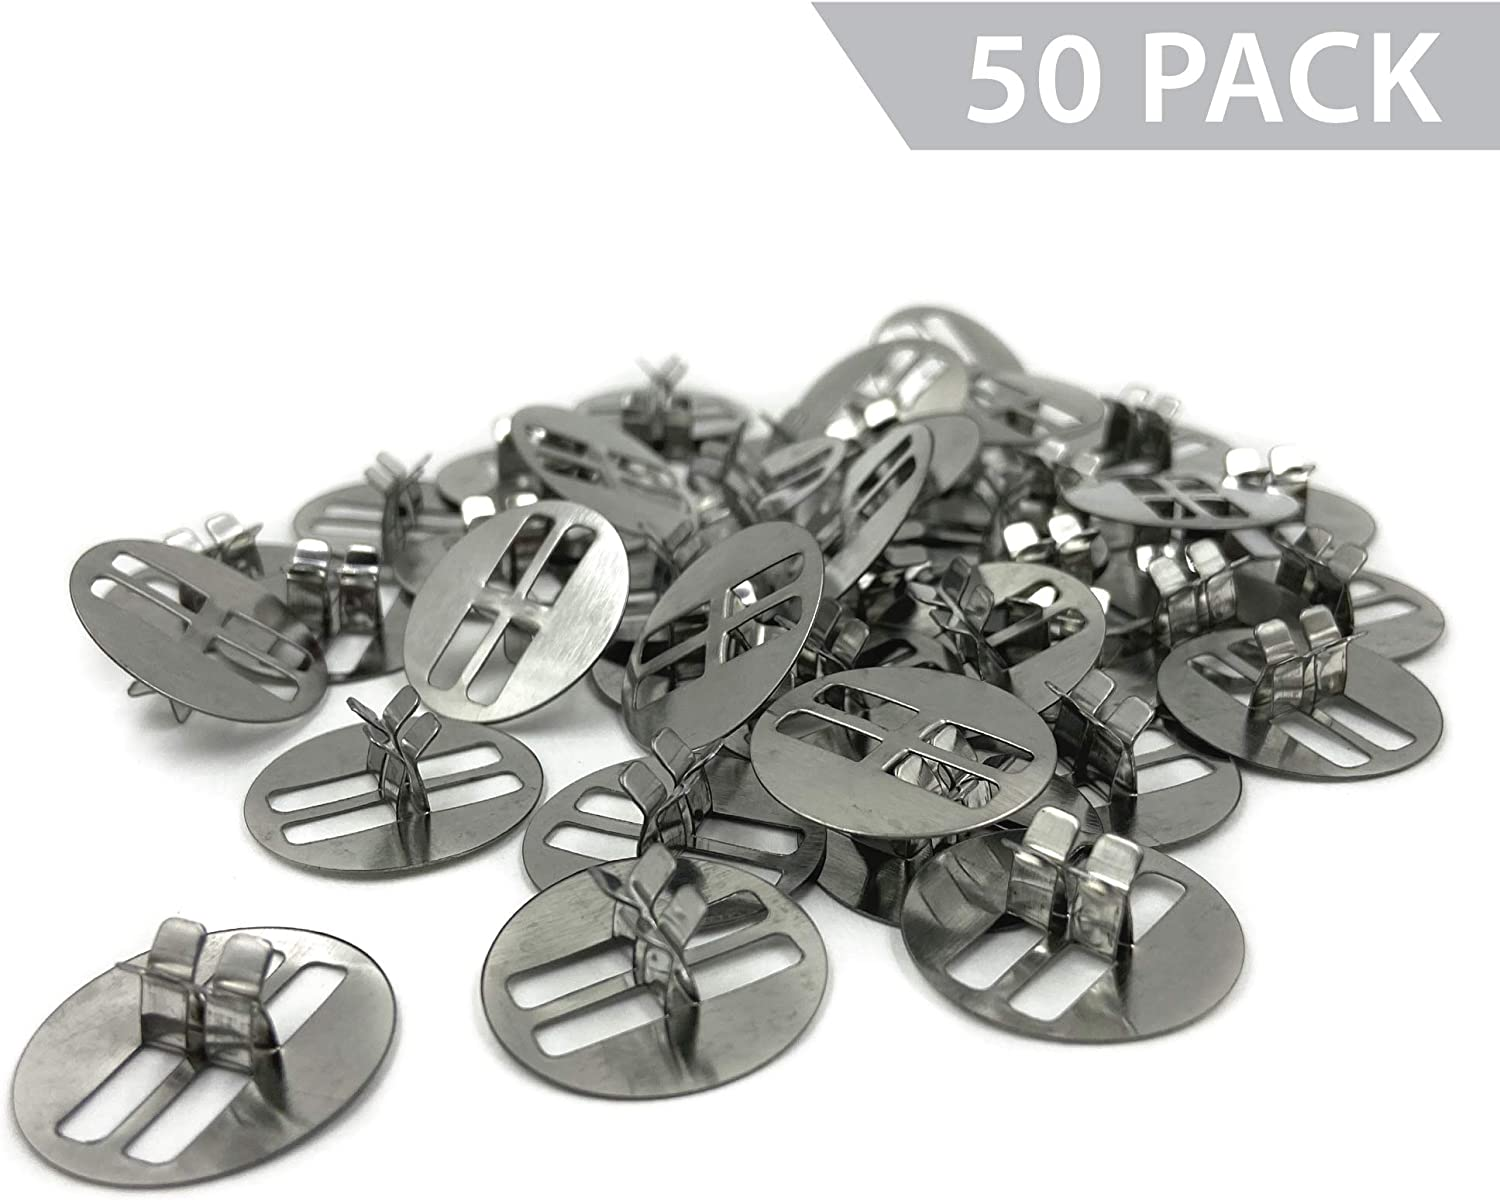 50 Pack Longer Burn Time /& Less Wasted Wax Universal Wood Wick Clips for Candles Sustainer Tabs Fit Most Wooden Wicks